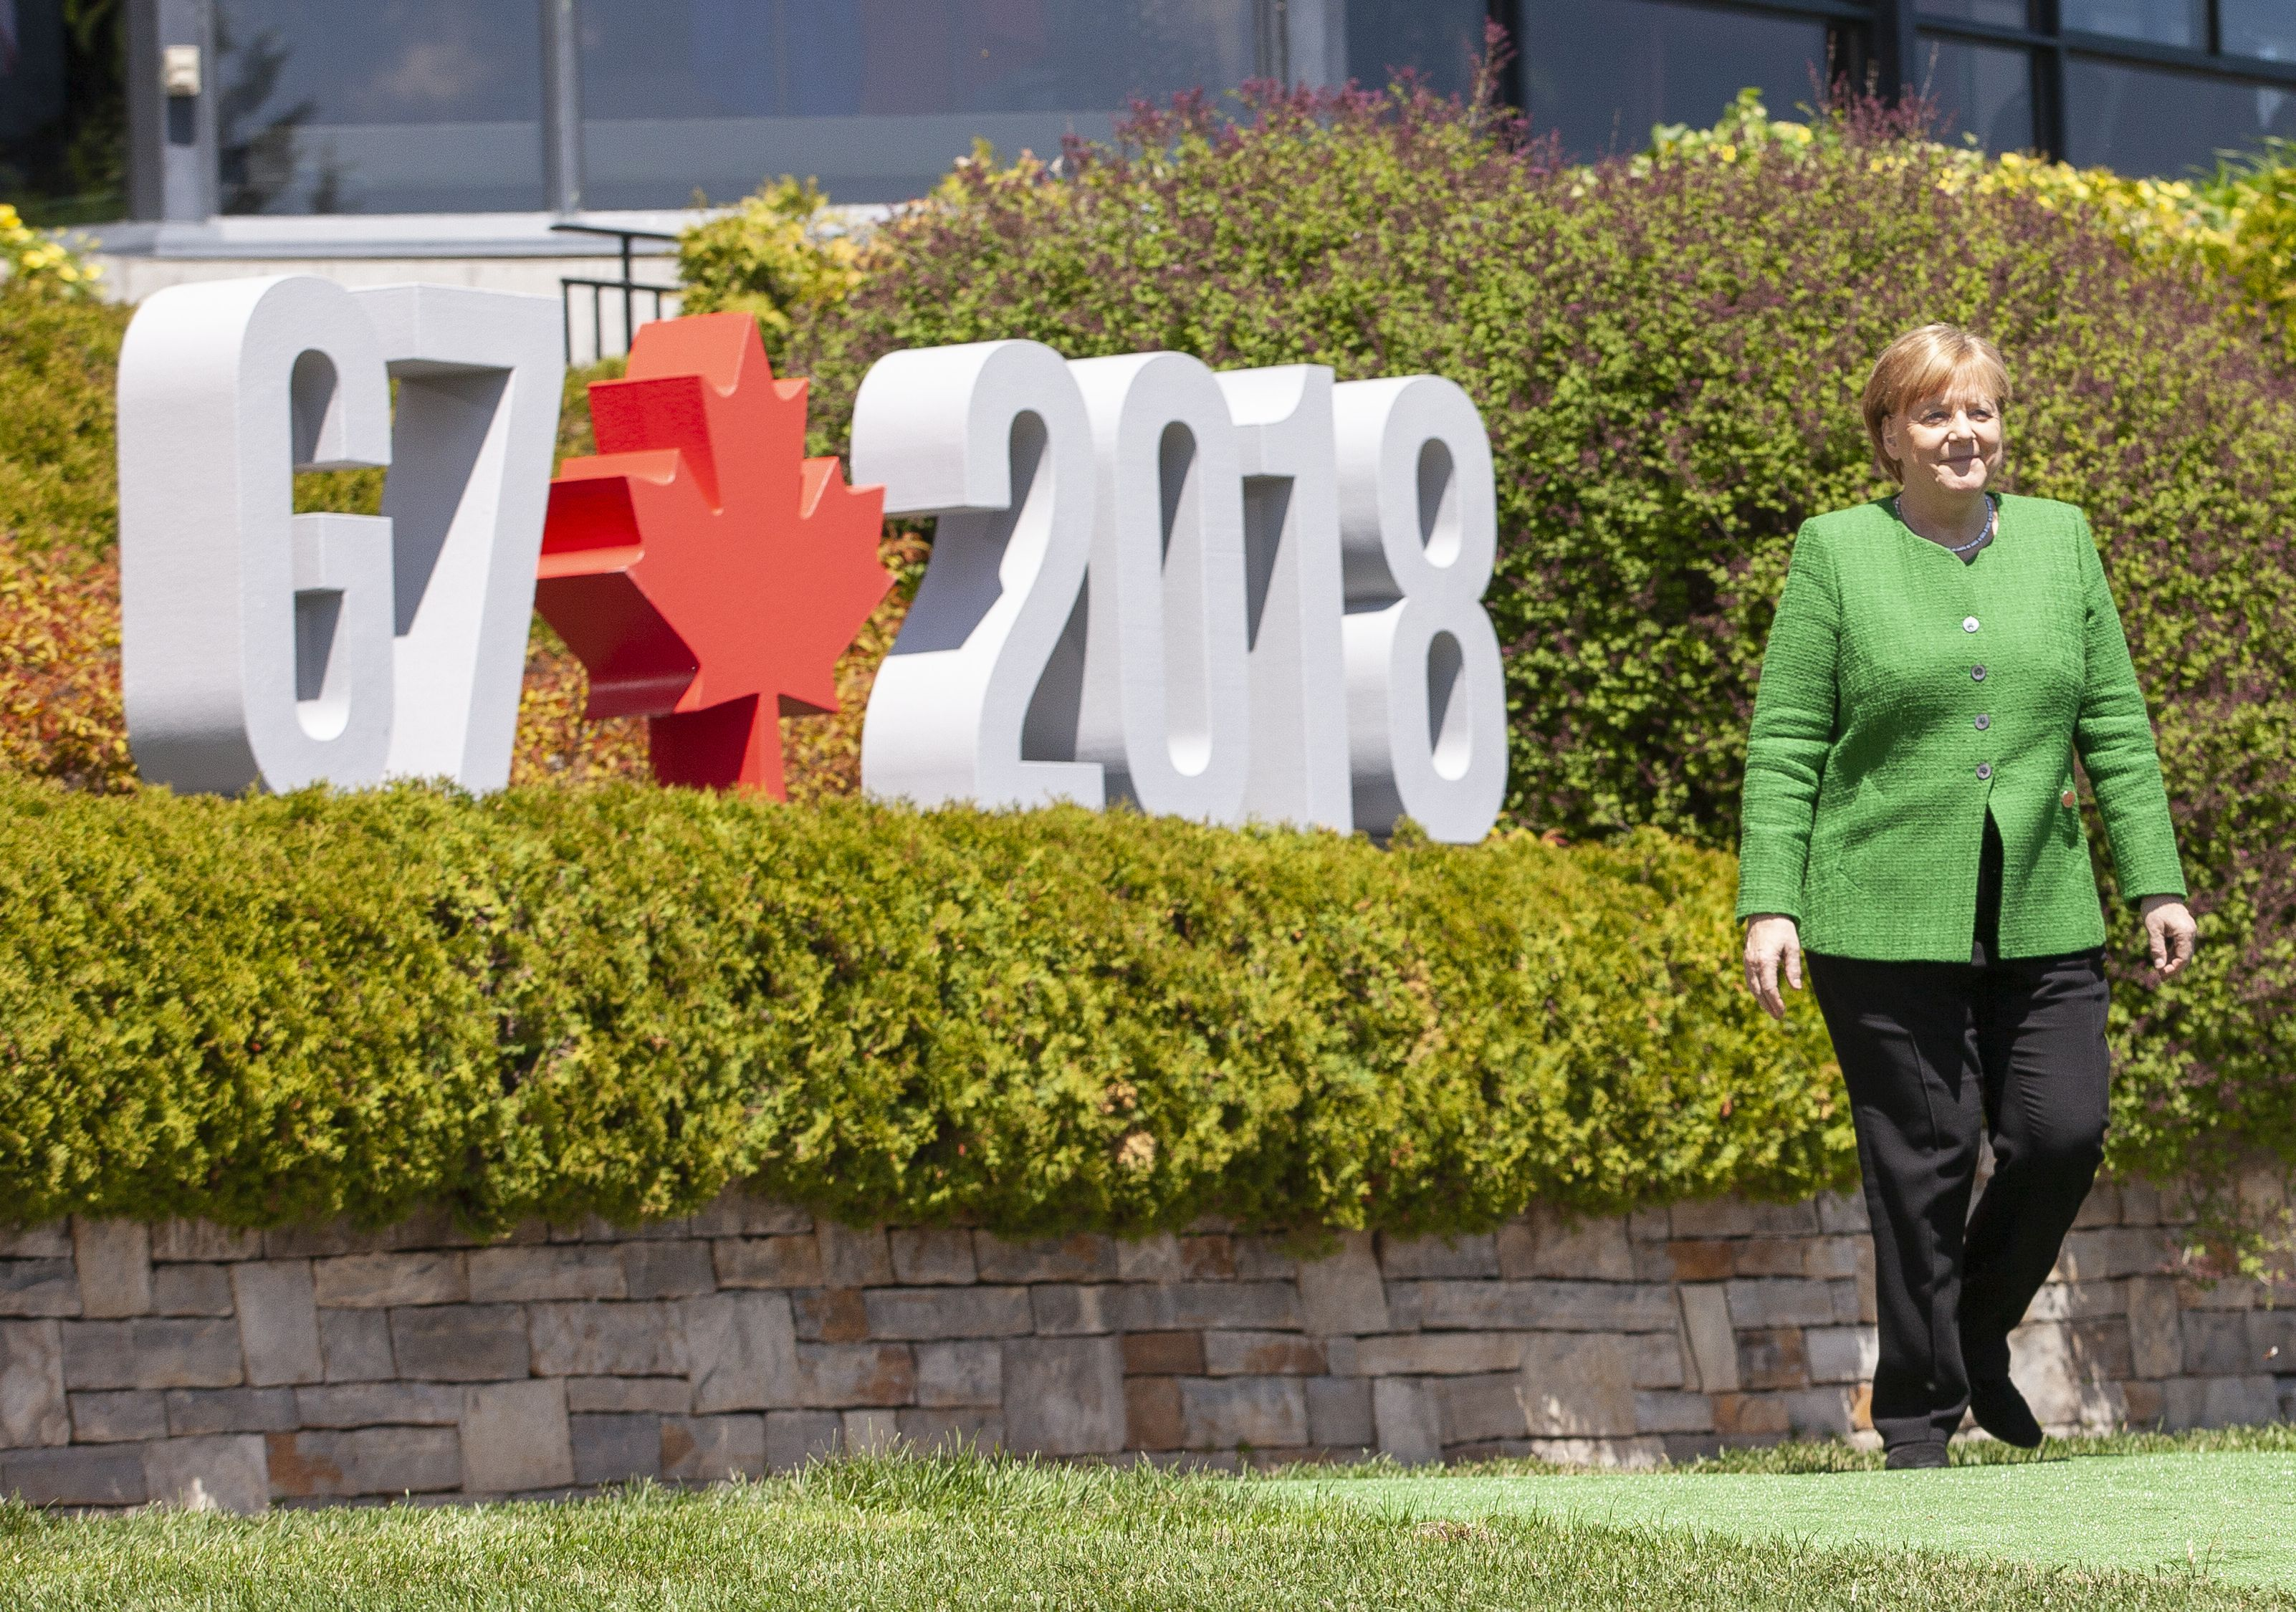 German Chancellor Angela Merkel walks to the official G7 welcoming ceremony in La Malbaie, Quebec, Canada.